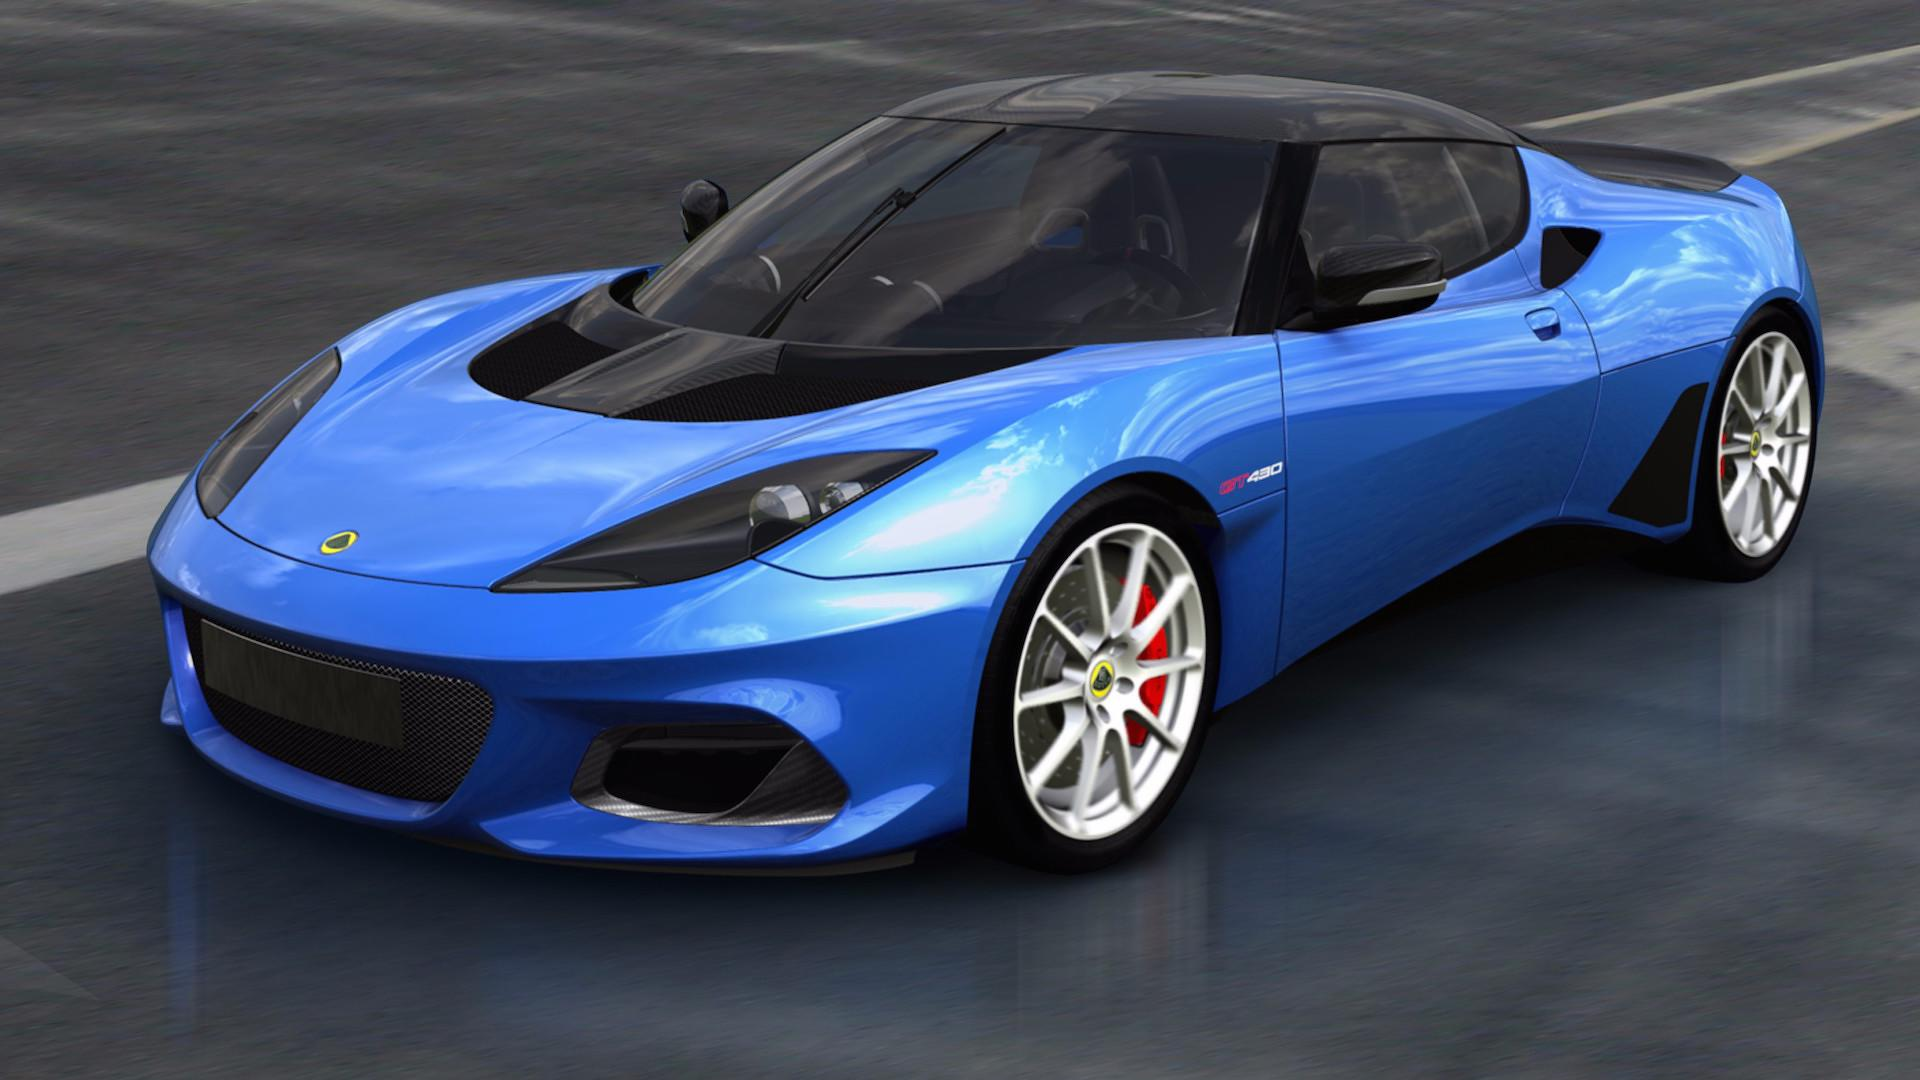 World's Top 10 Fastest Cars Of All Time